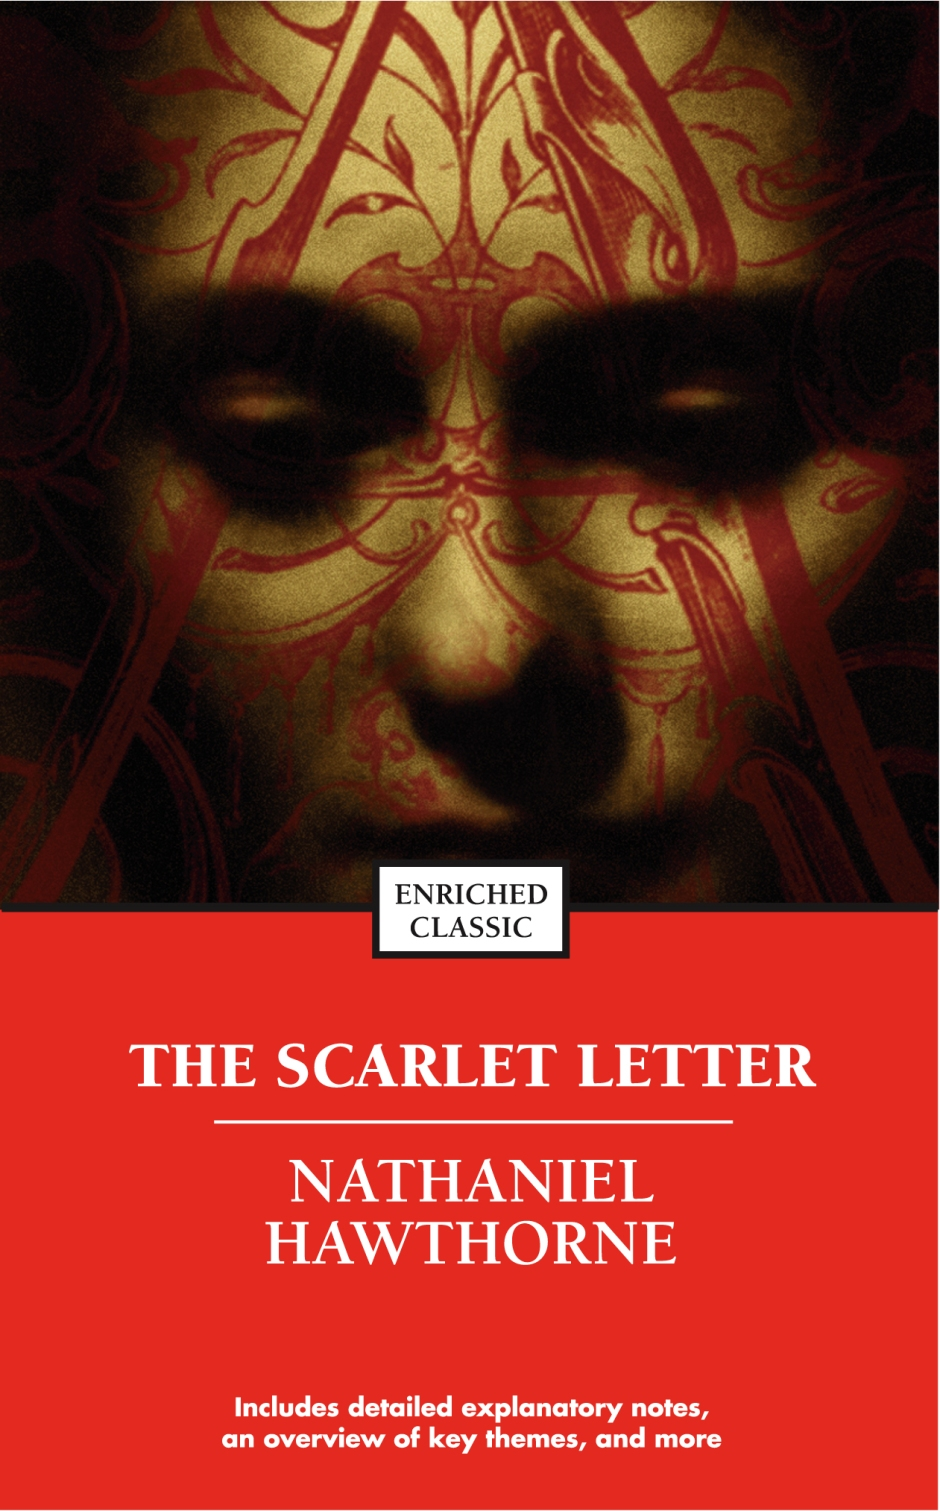 In The Scarlet Letter, what conclusion can I make about a biblical allusion?